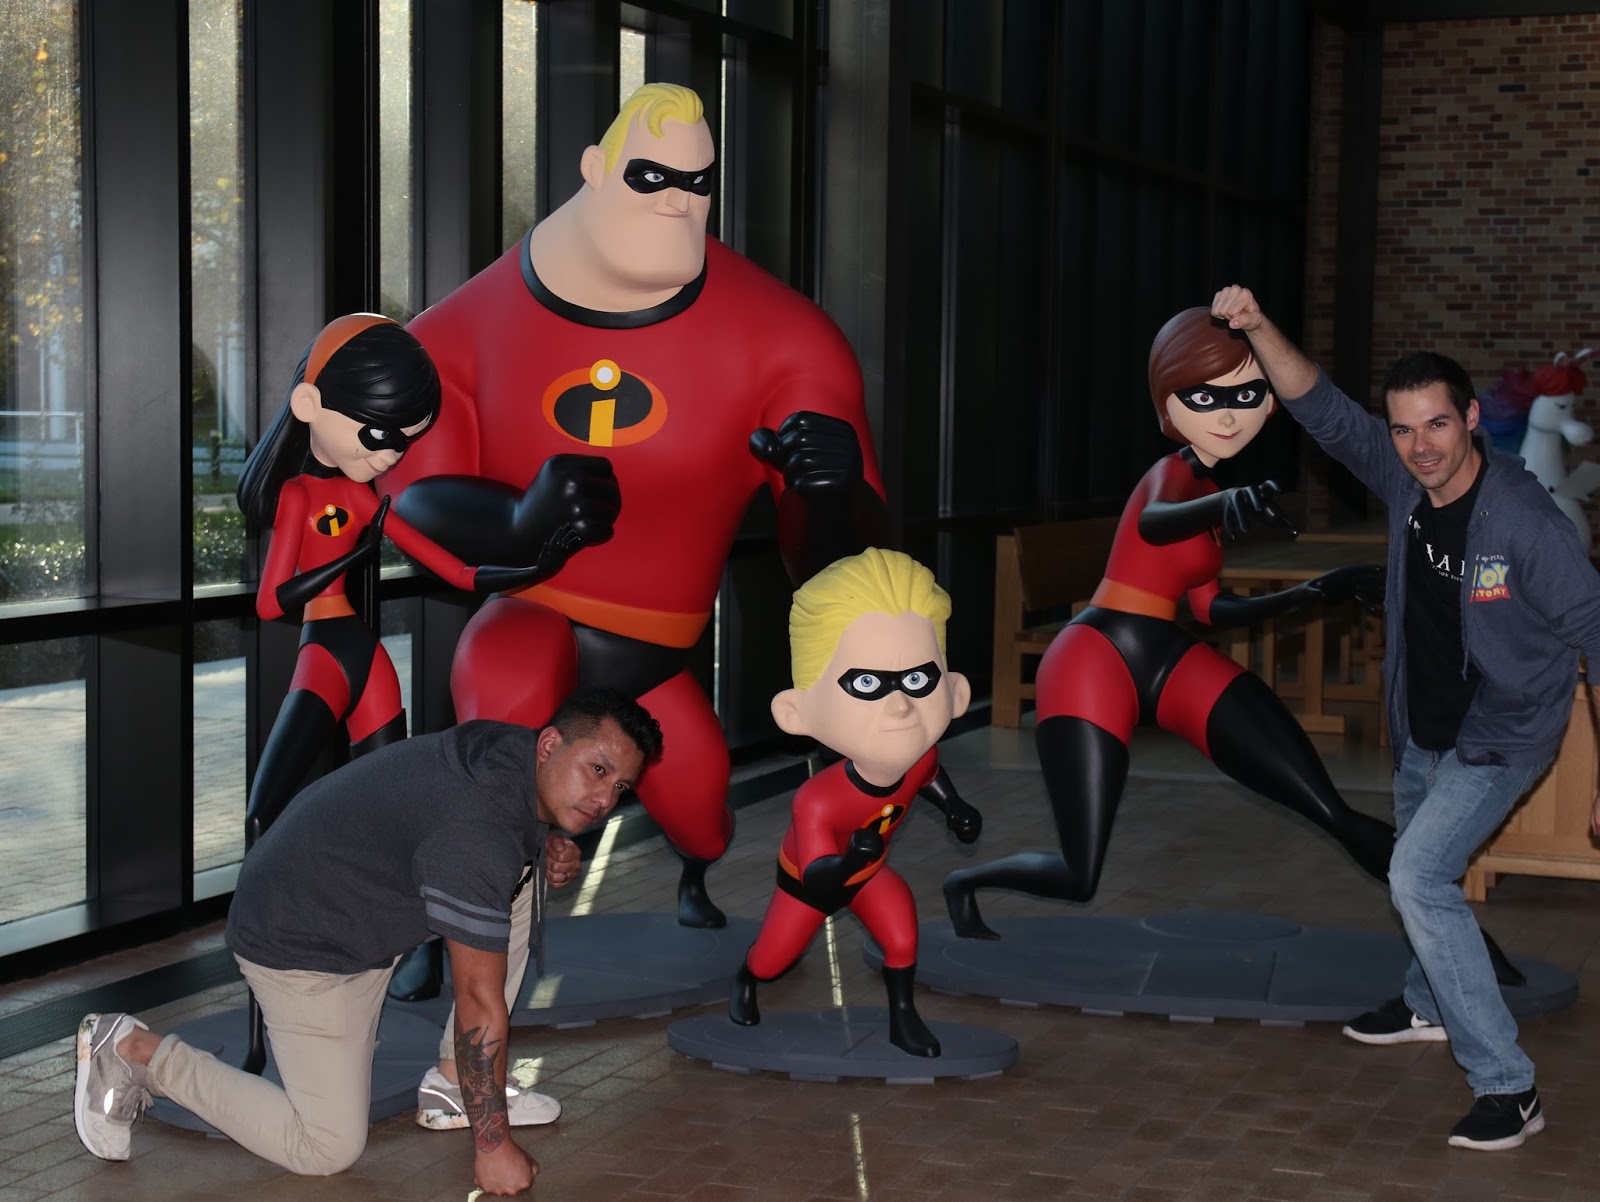 pixar studios 2017 the incredibles